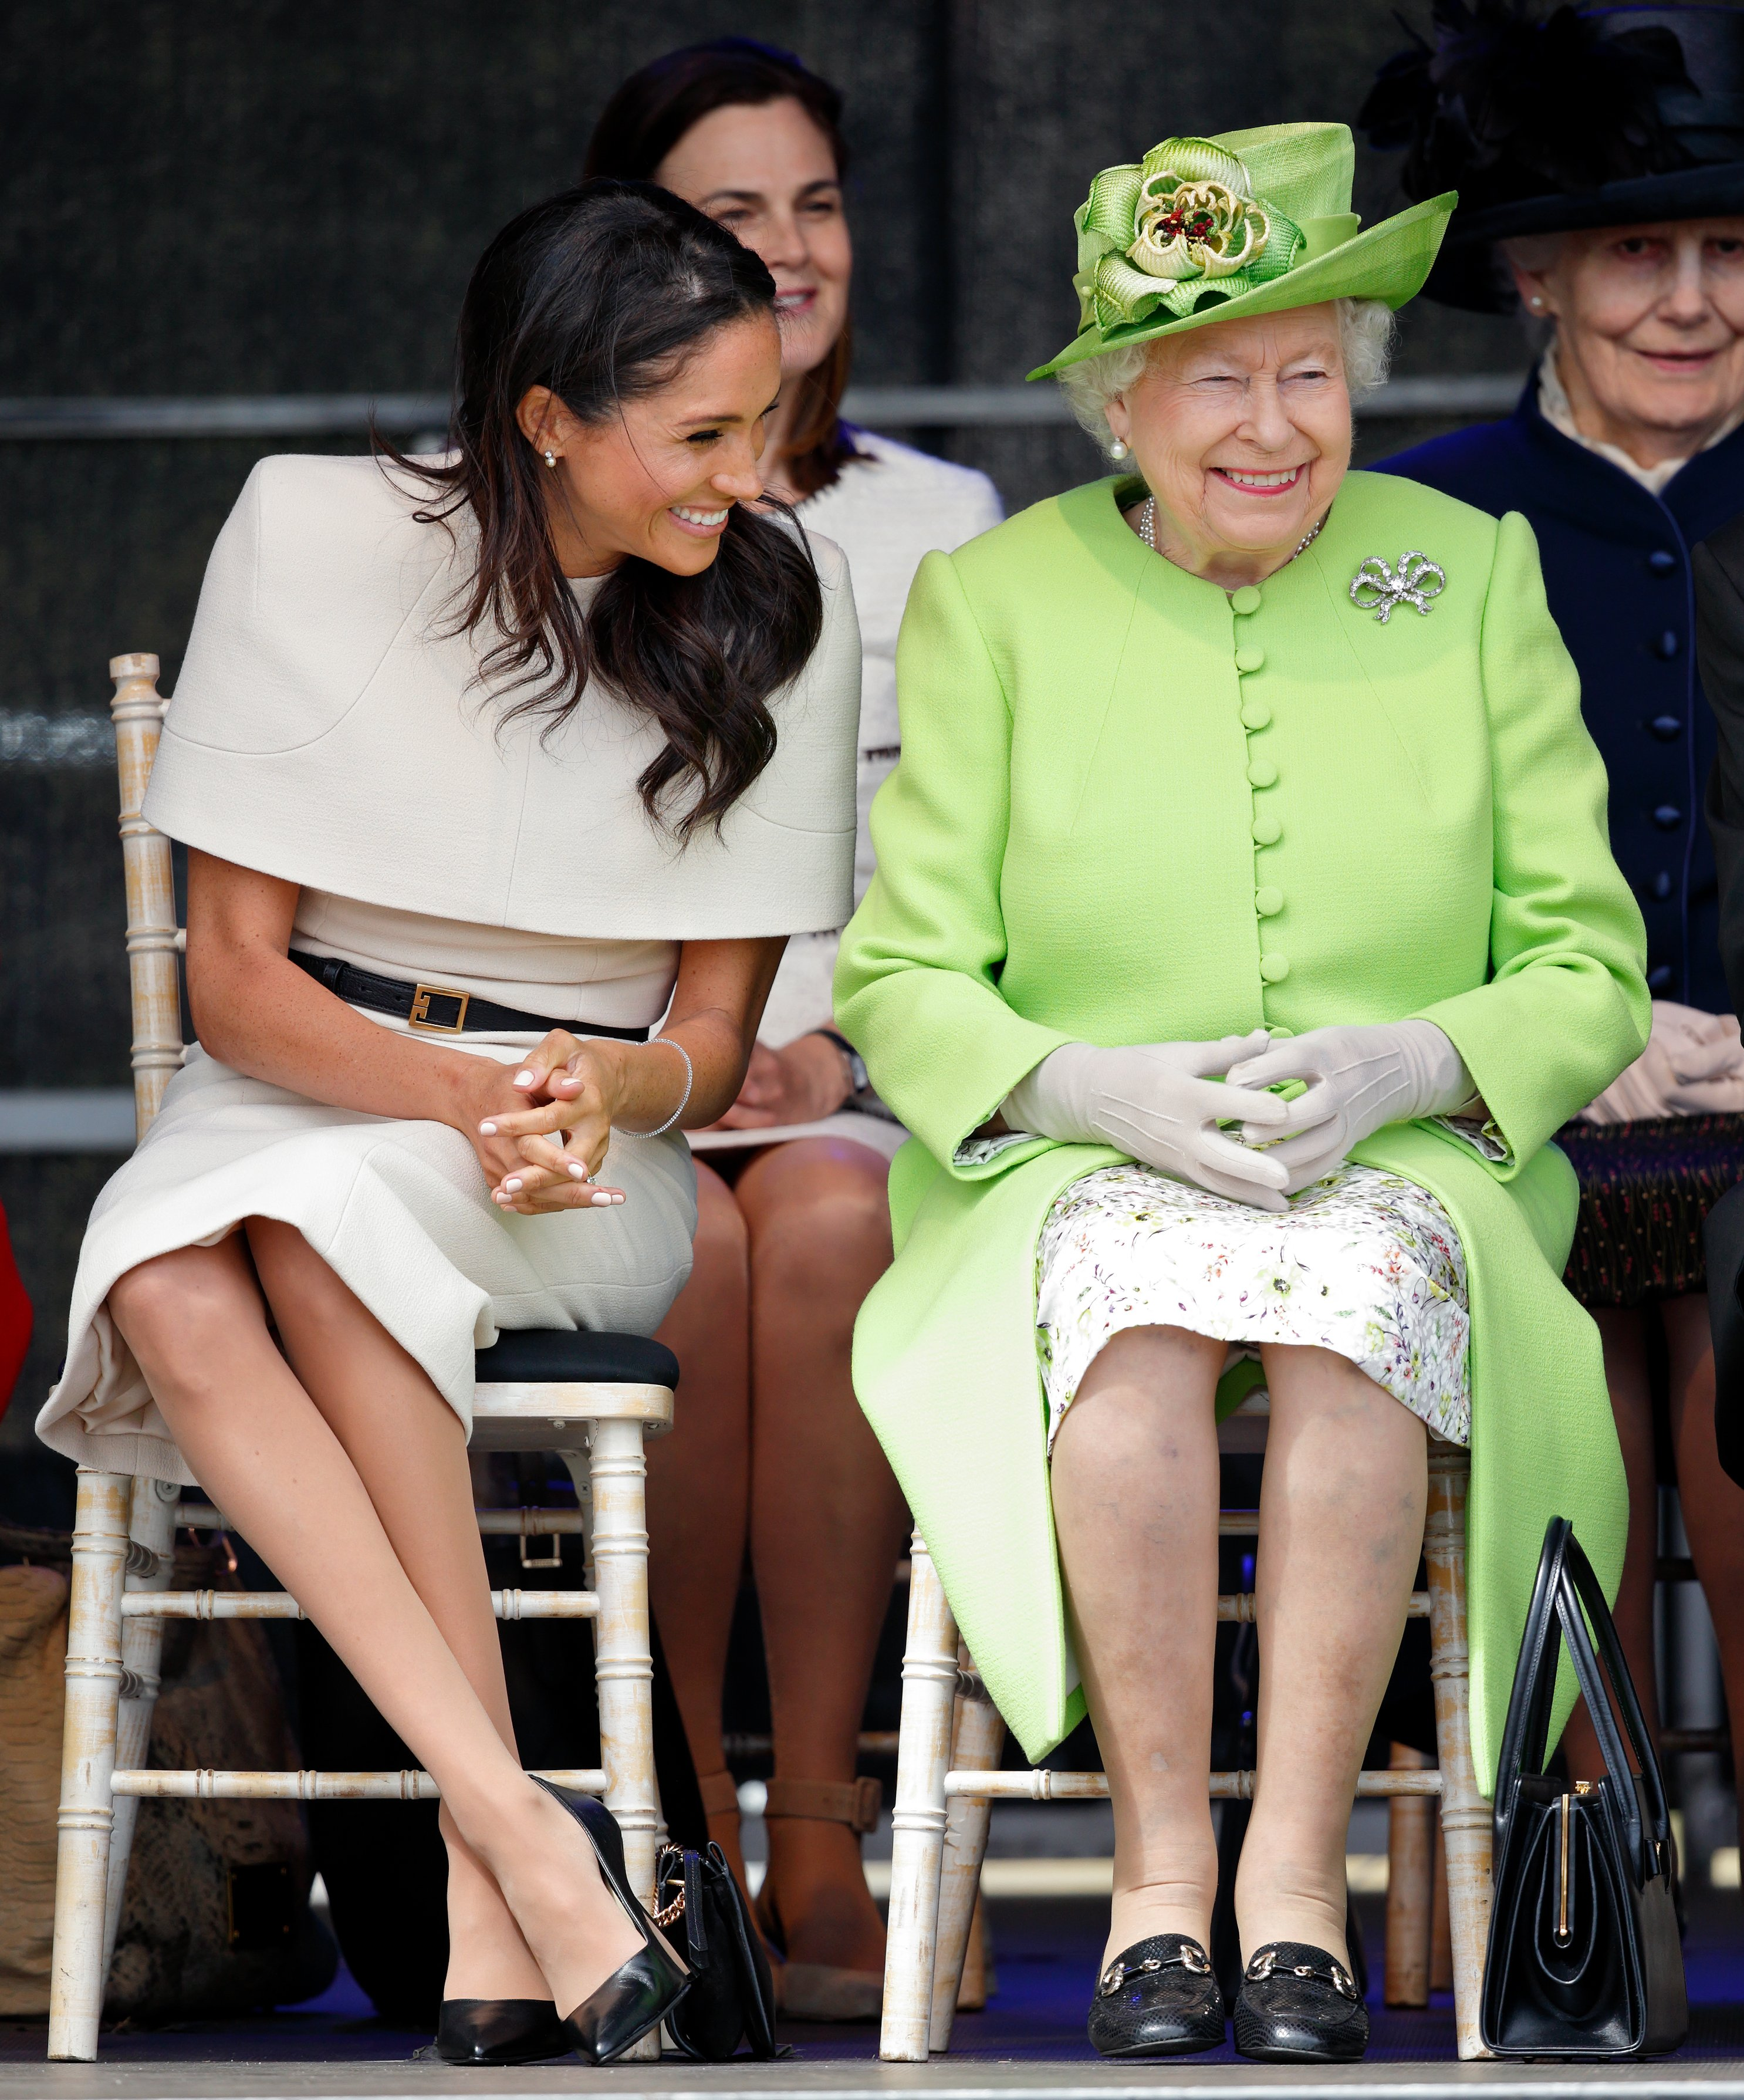 Image Credits: Getty Images / Max Mumby / Indigo   Meghan, Duchess of Sussex and Queen Elizabeth II attend a ceremony to open the new Mersey Gateway Bridge on June 14, 2018 in Widnes, England. Meghan Markle married Prince Harry last month to become The Duchess of Sussex and this is her first engagement with the Queen. During the visit the pair will open a road bridge in Widnes and visit The Storyhouse and Town Hall in Chester.